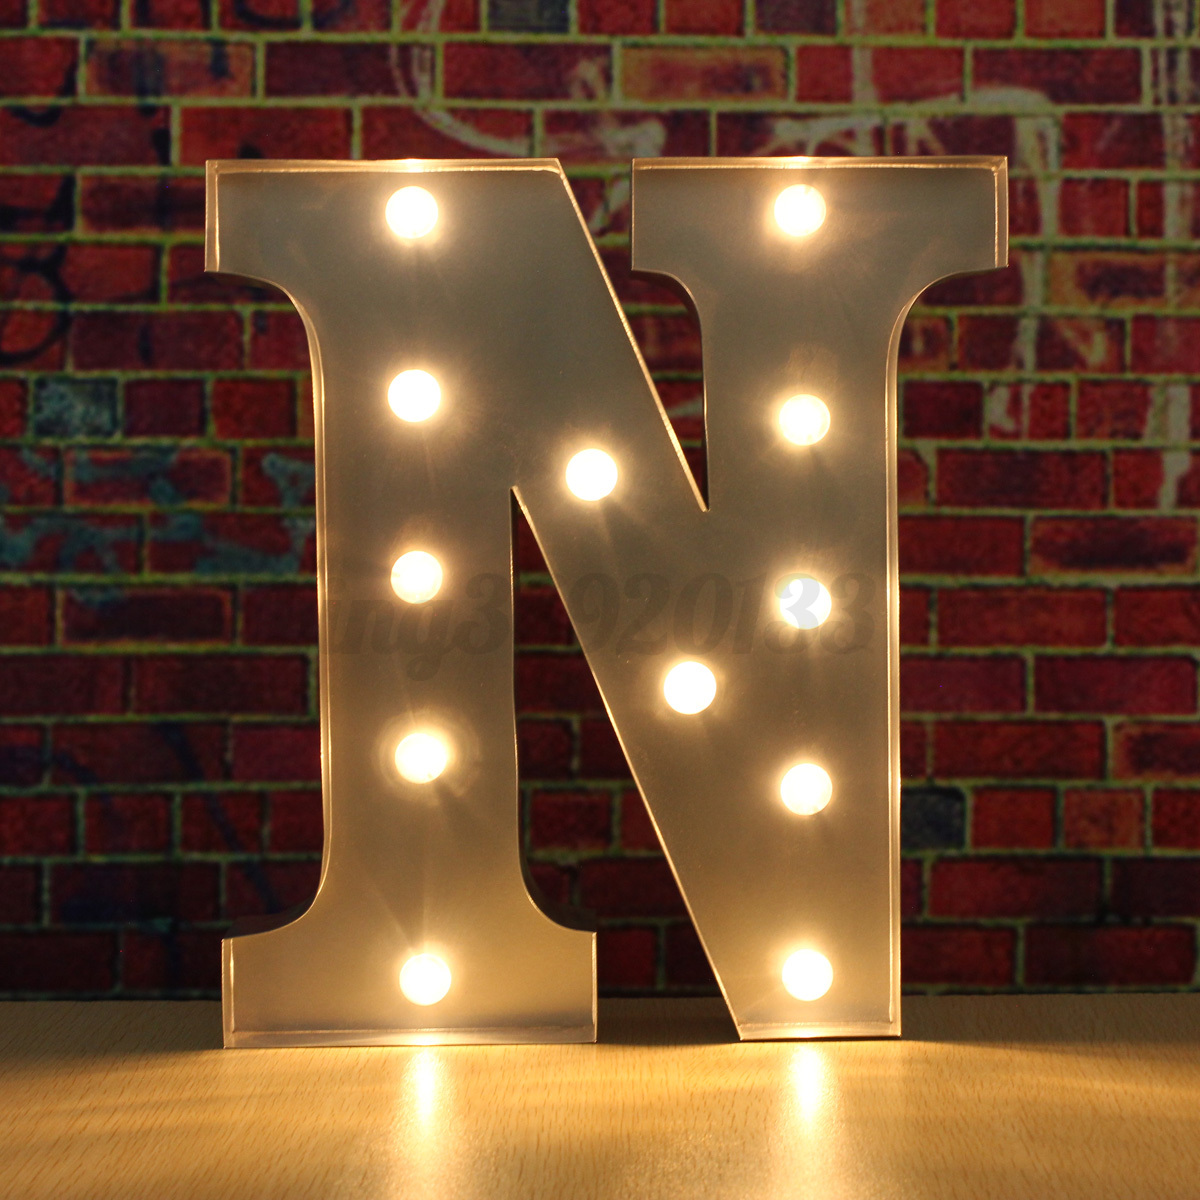 silver led 12 marquee letter lights vintage circus style alphabet light up ebay. Black Bedroom Furniture Sets. Home Design Ideas